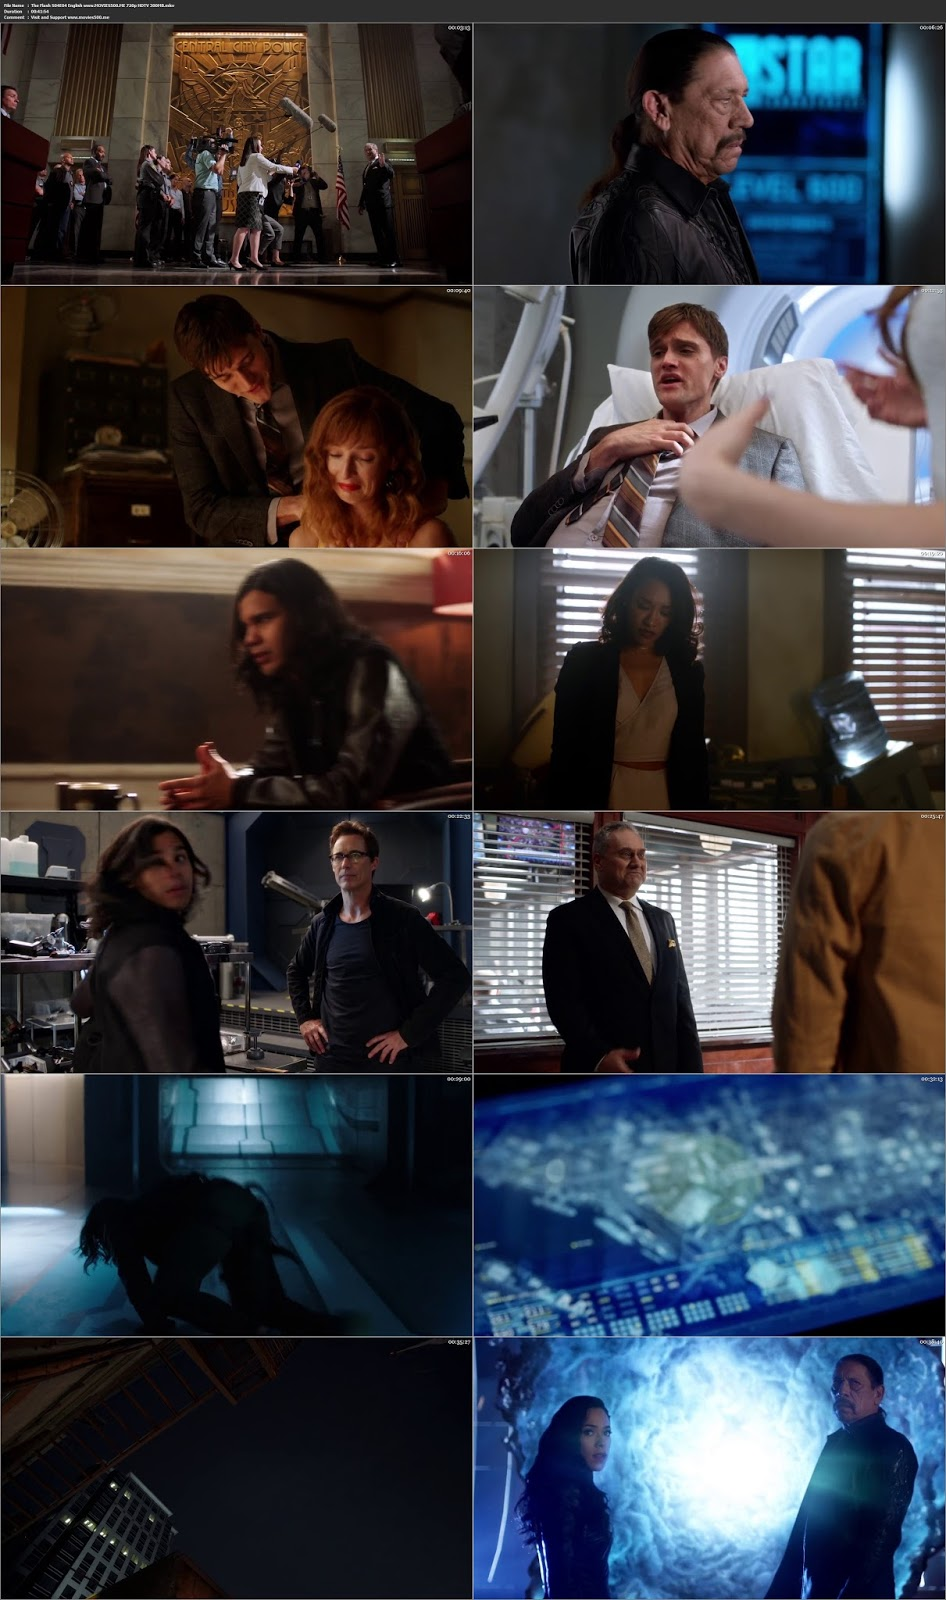 The Flash S04E04 English 325MB HDTVRip 720 at s400.bet